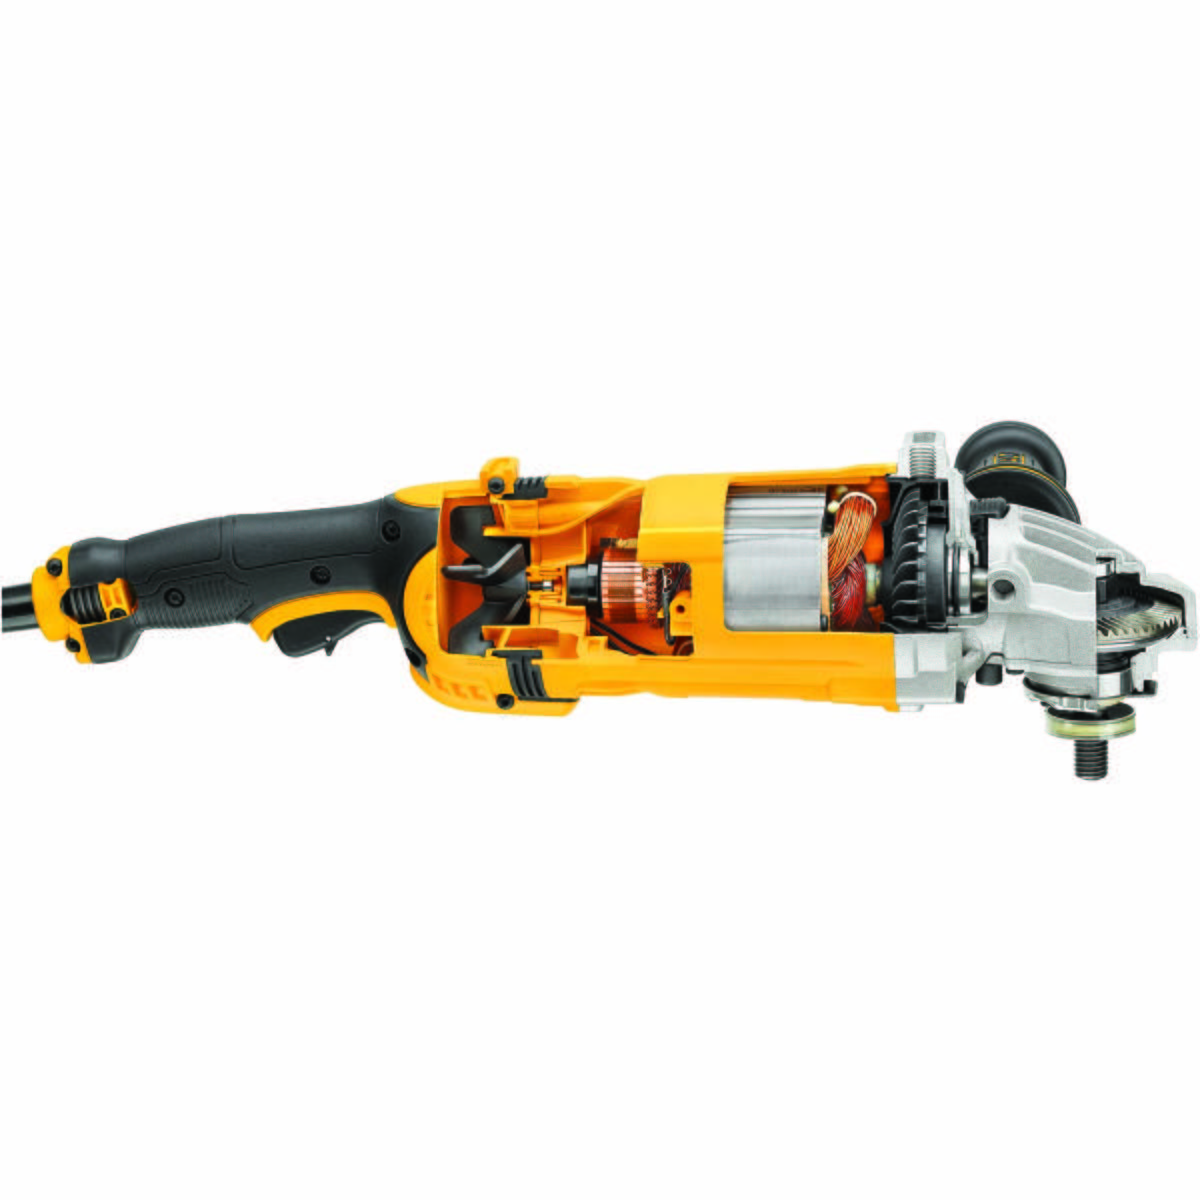 """4.2 Amp Paddle Switch Die Grinder, No Lock-On - 7"""" 8,500 rpm 4.5HP Angle Grinder"""